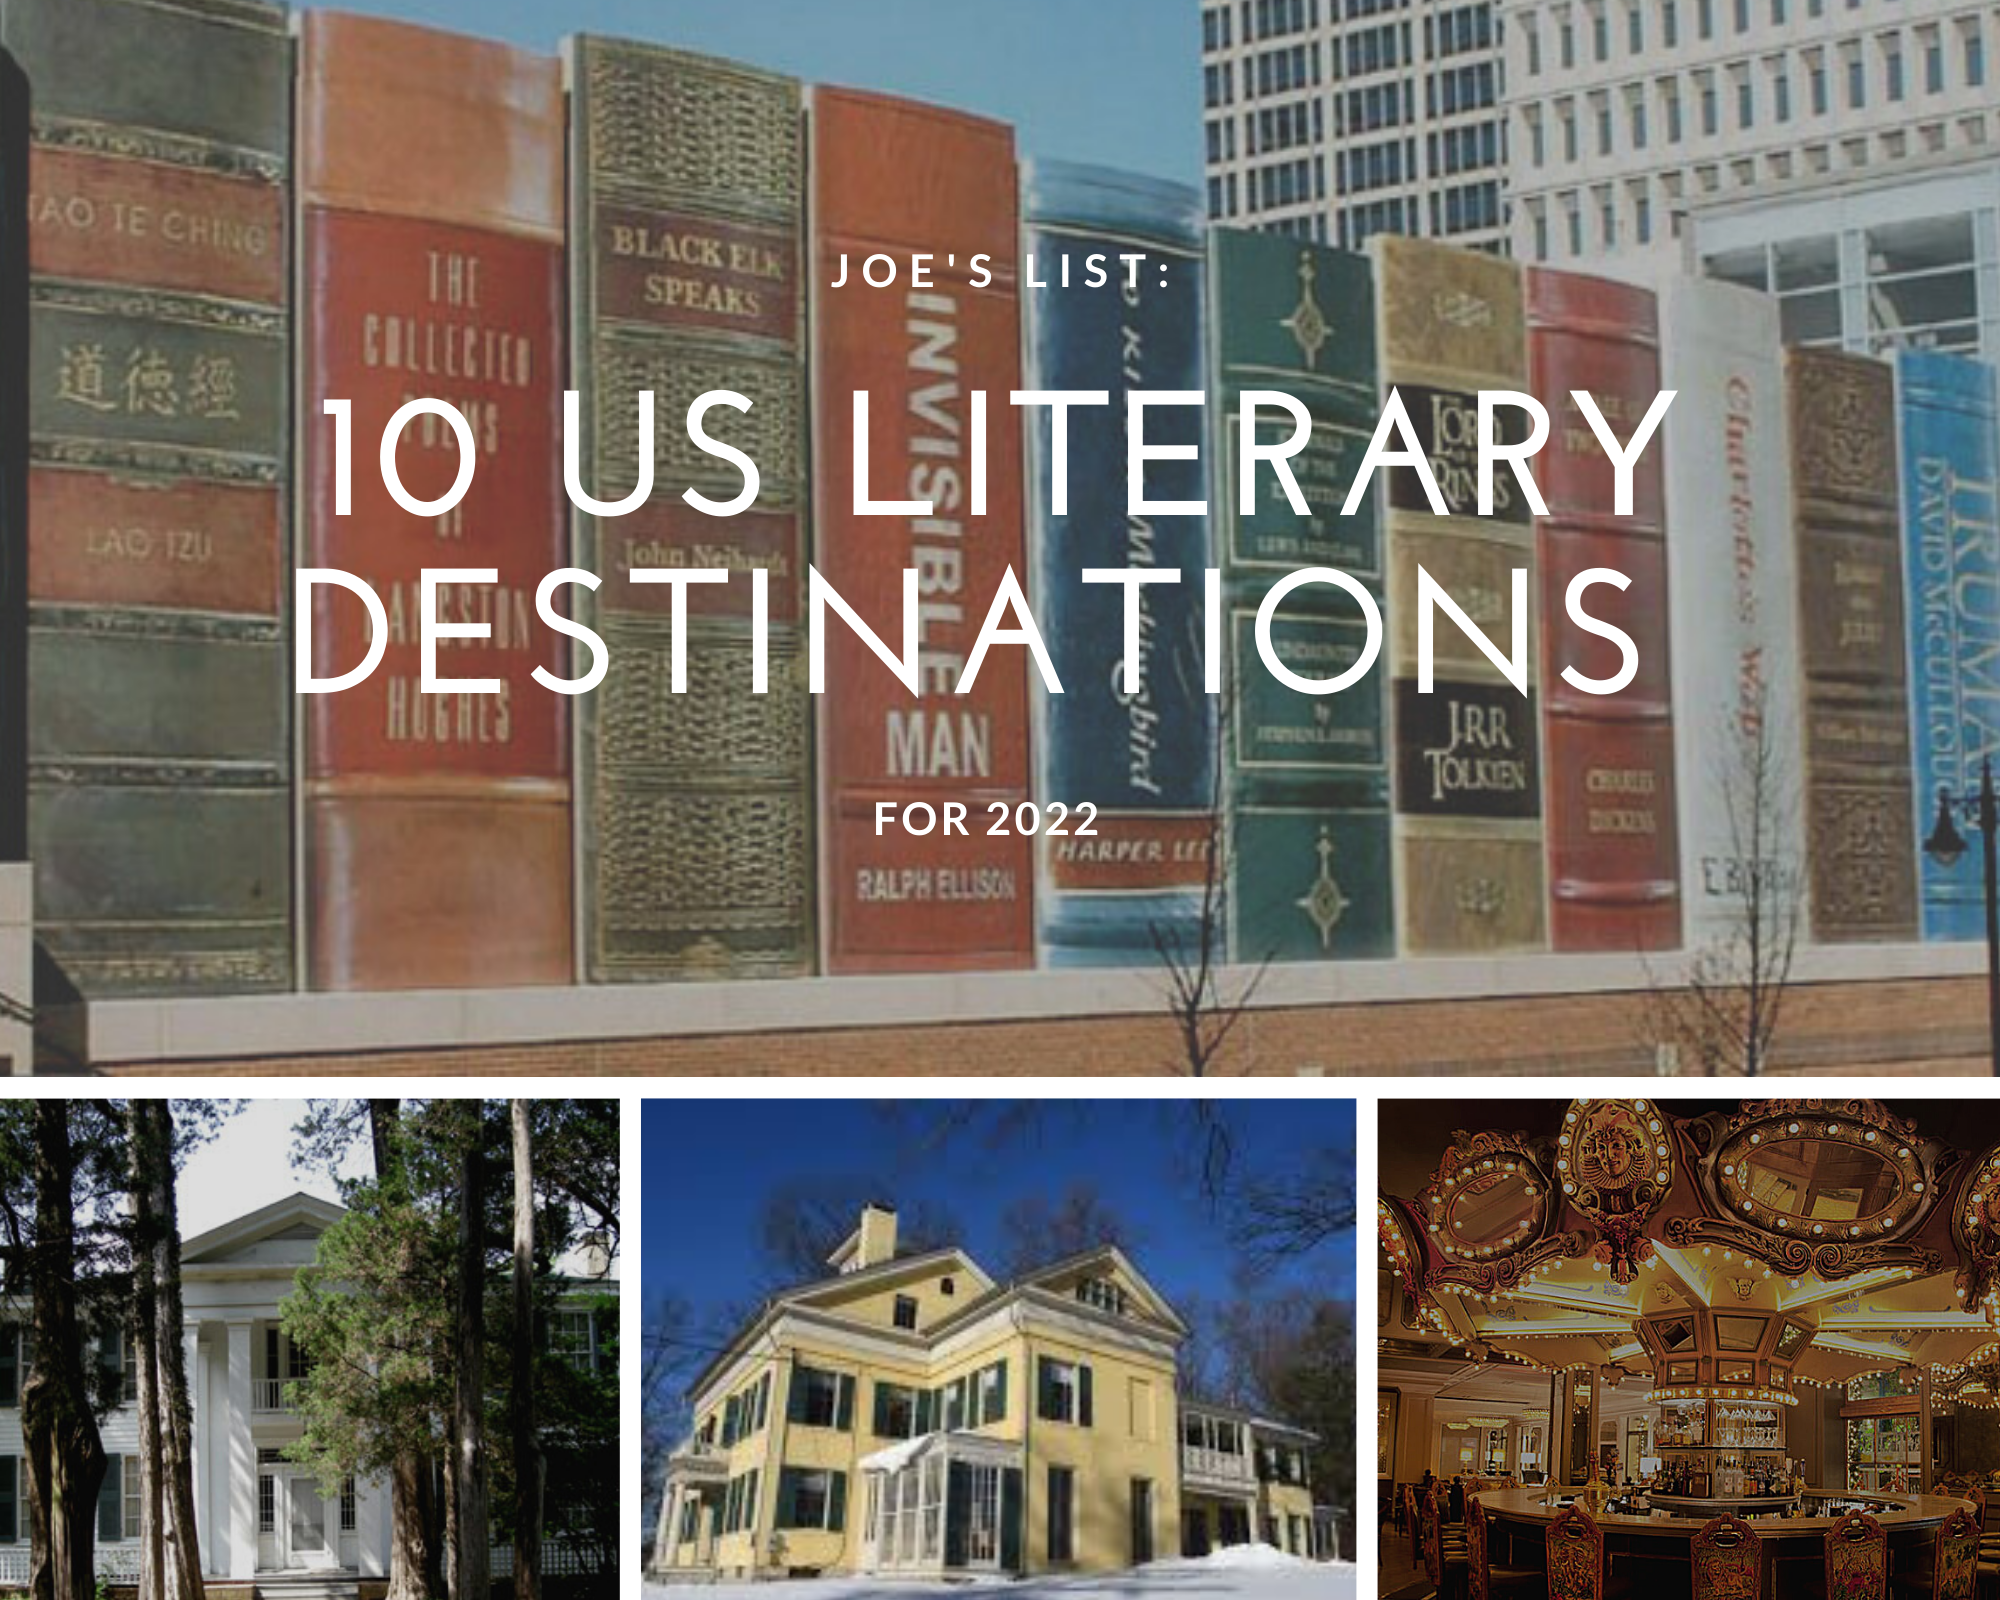 10 US Literary Destinations for 2022